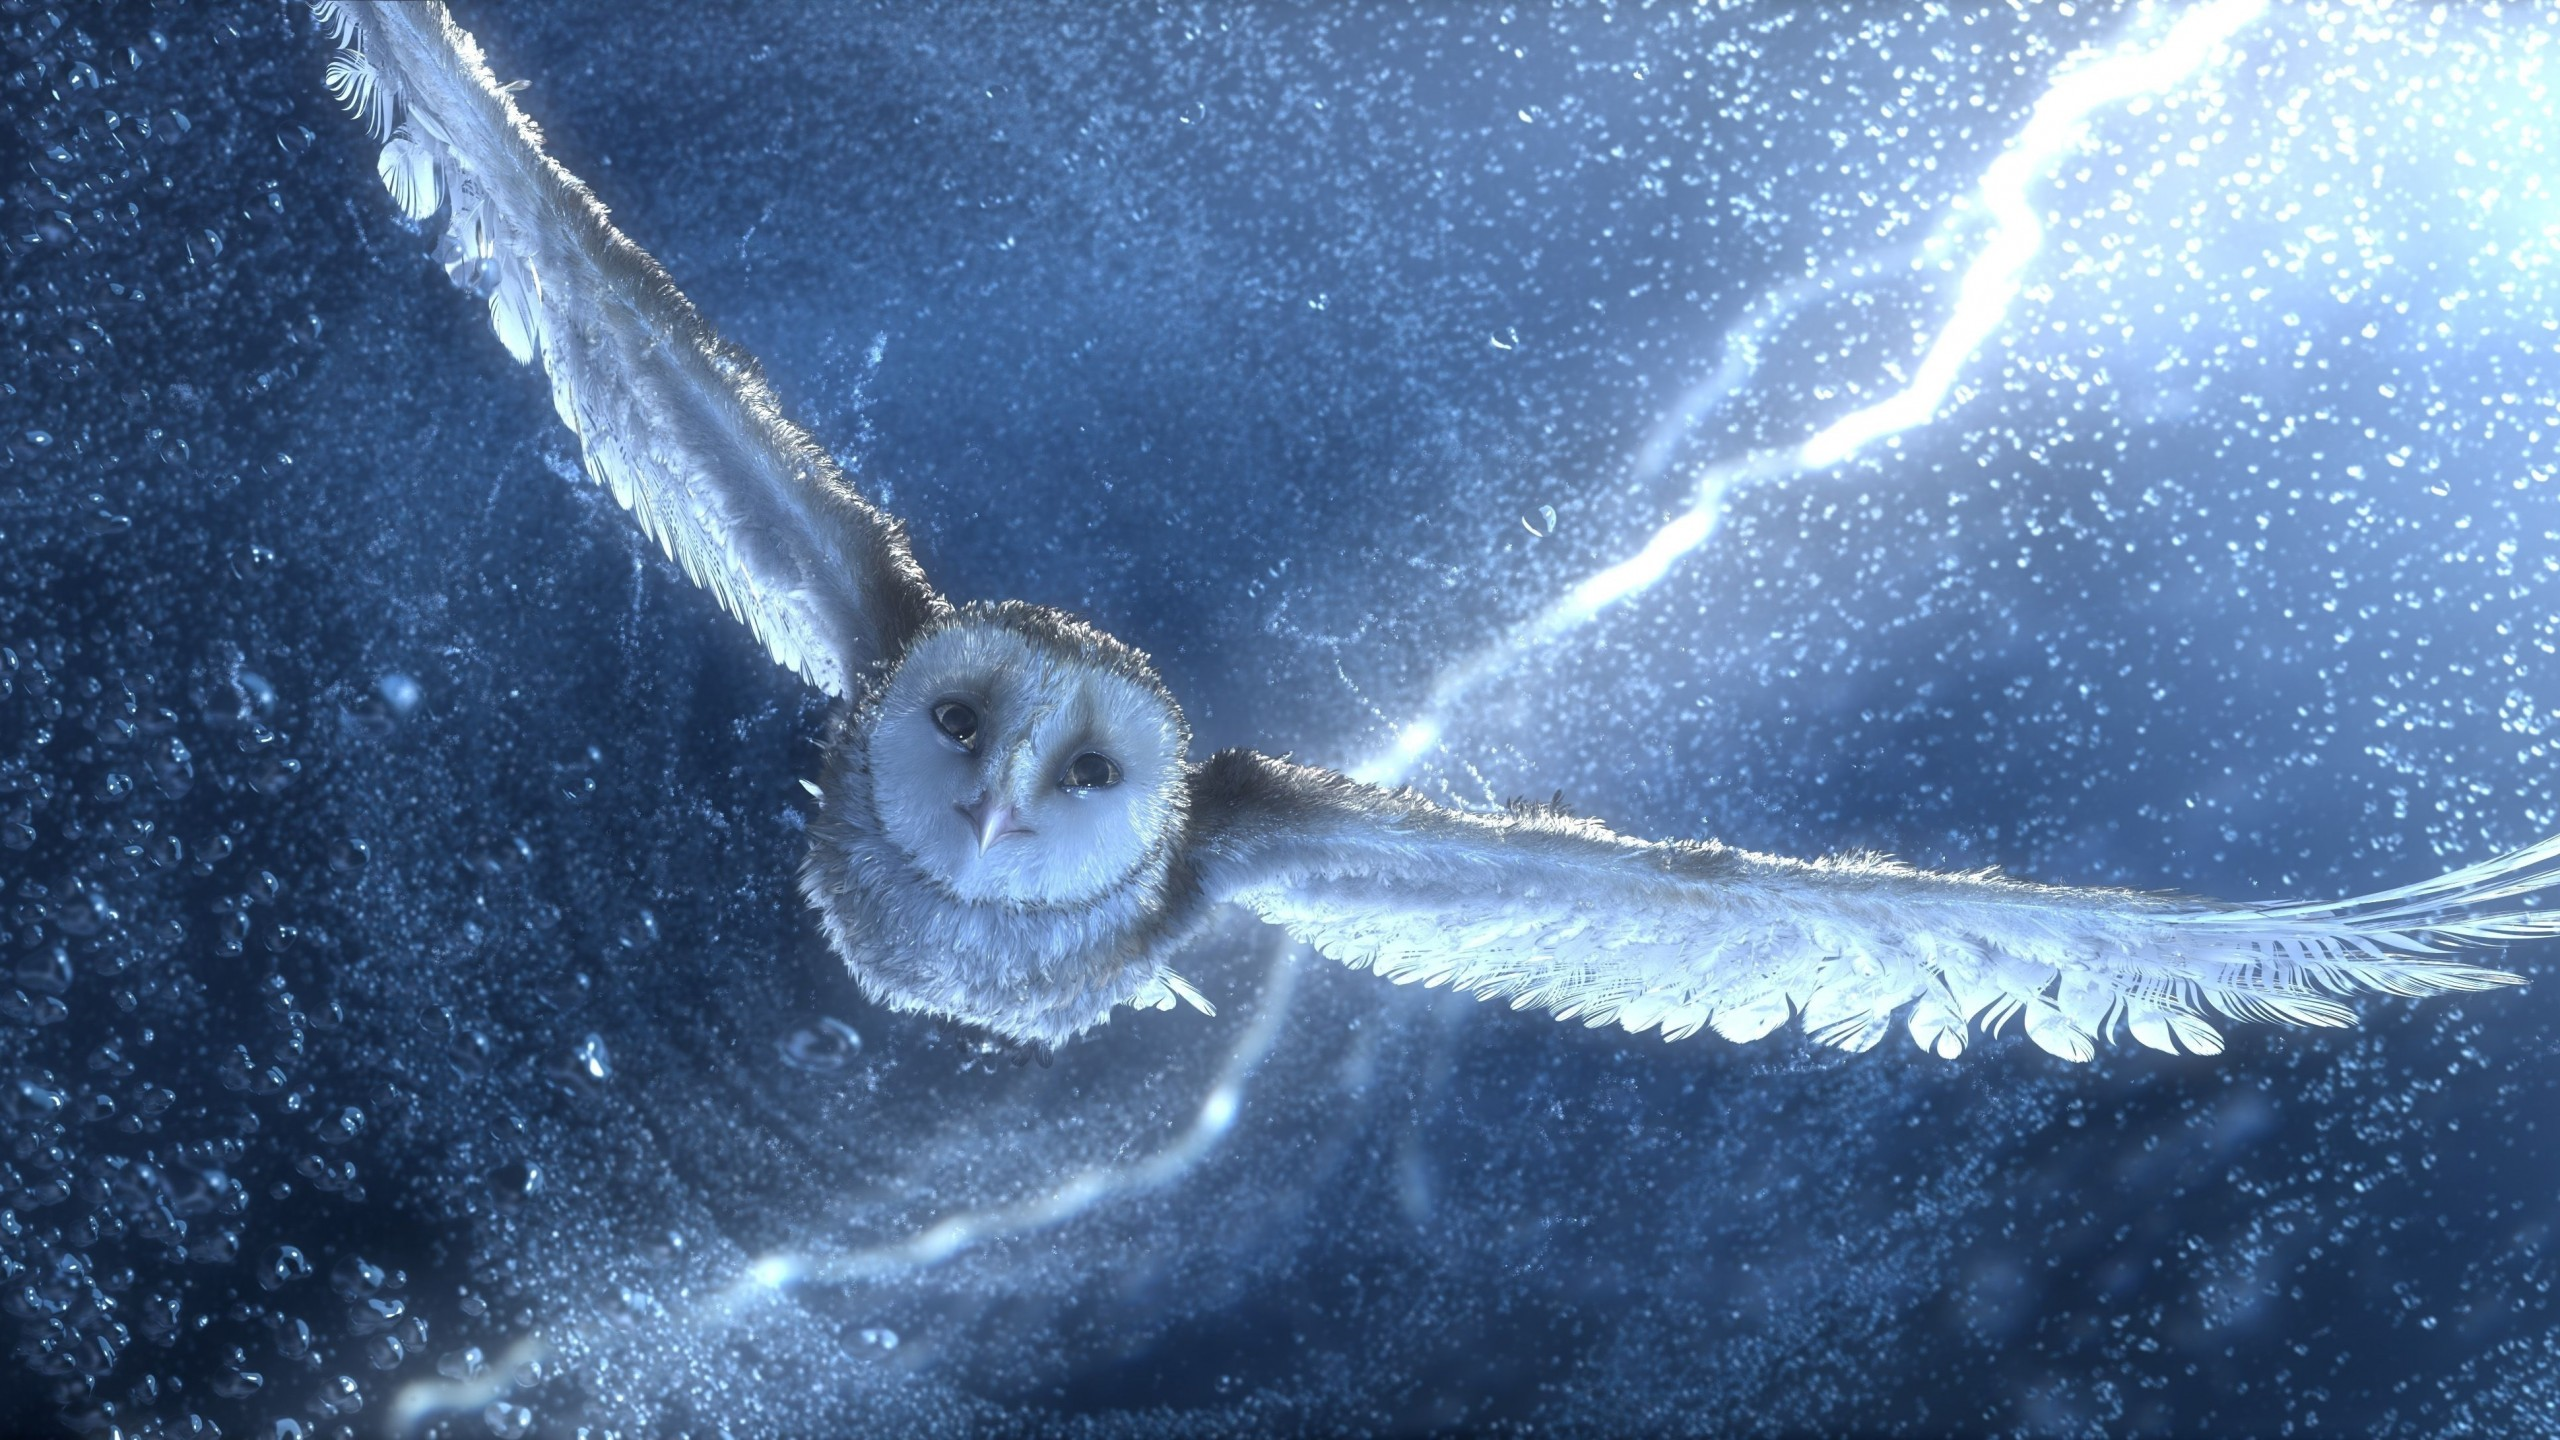 Pinterest Girls Wallpaper Wallpaper Owl Flying Snow Storm Lightning Blue Bird